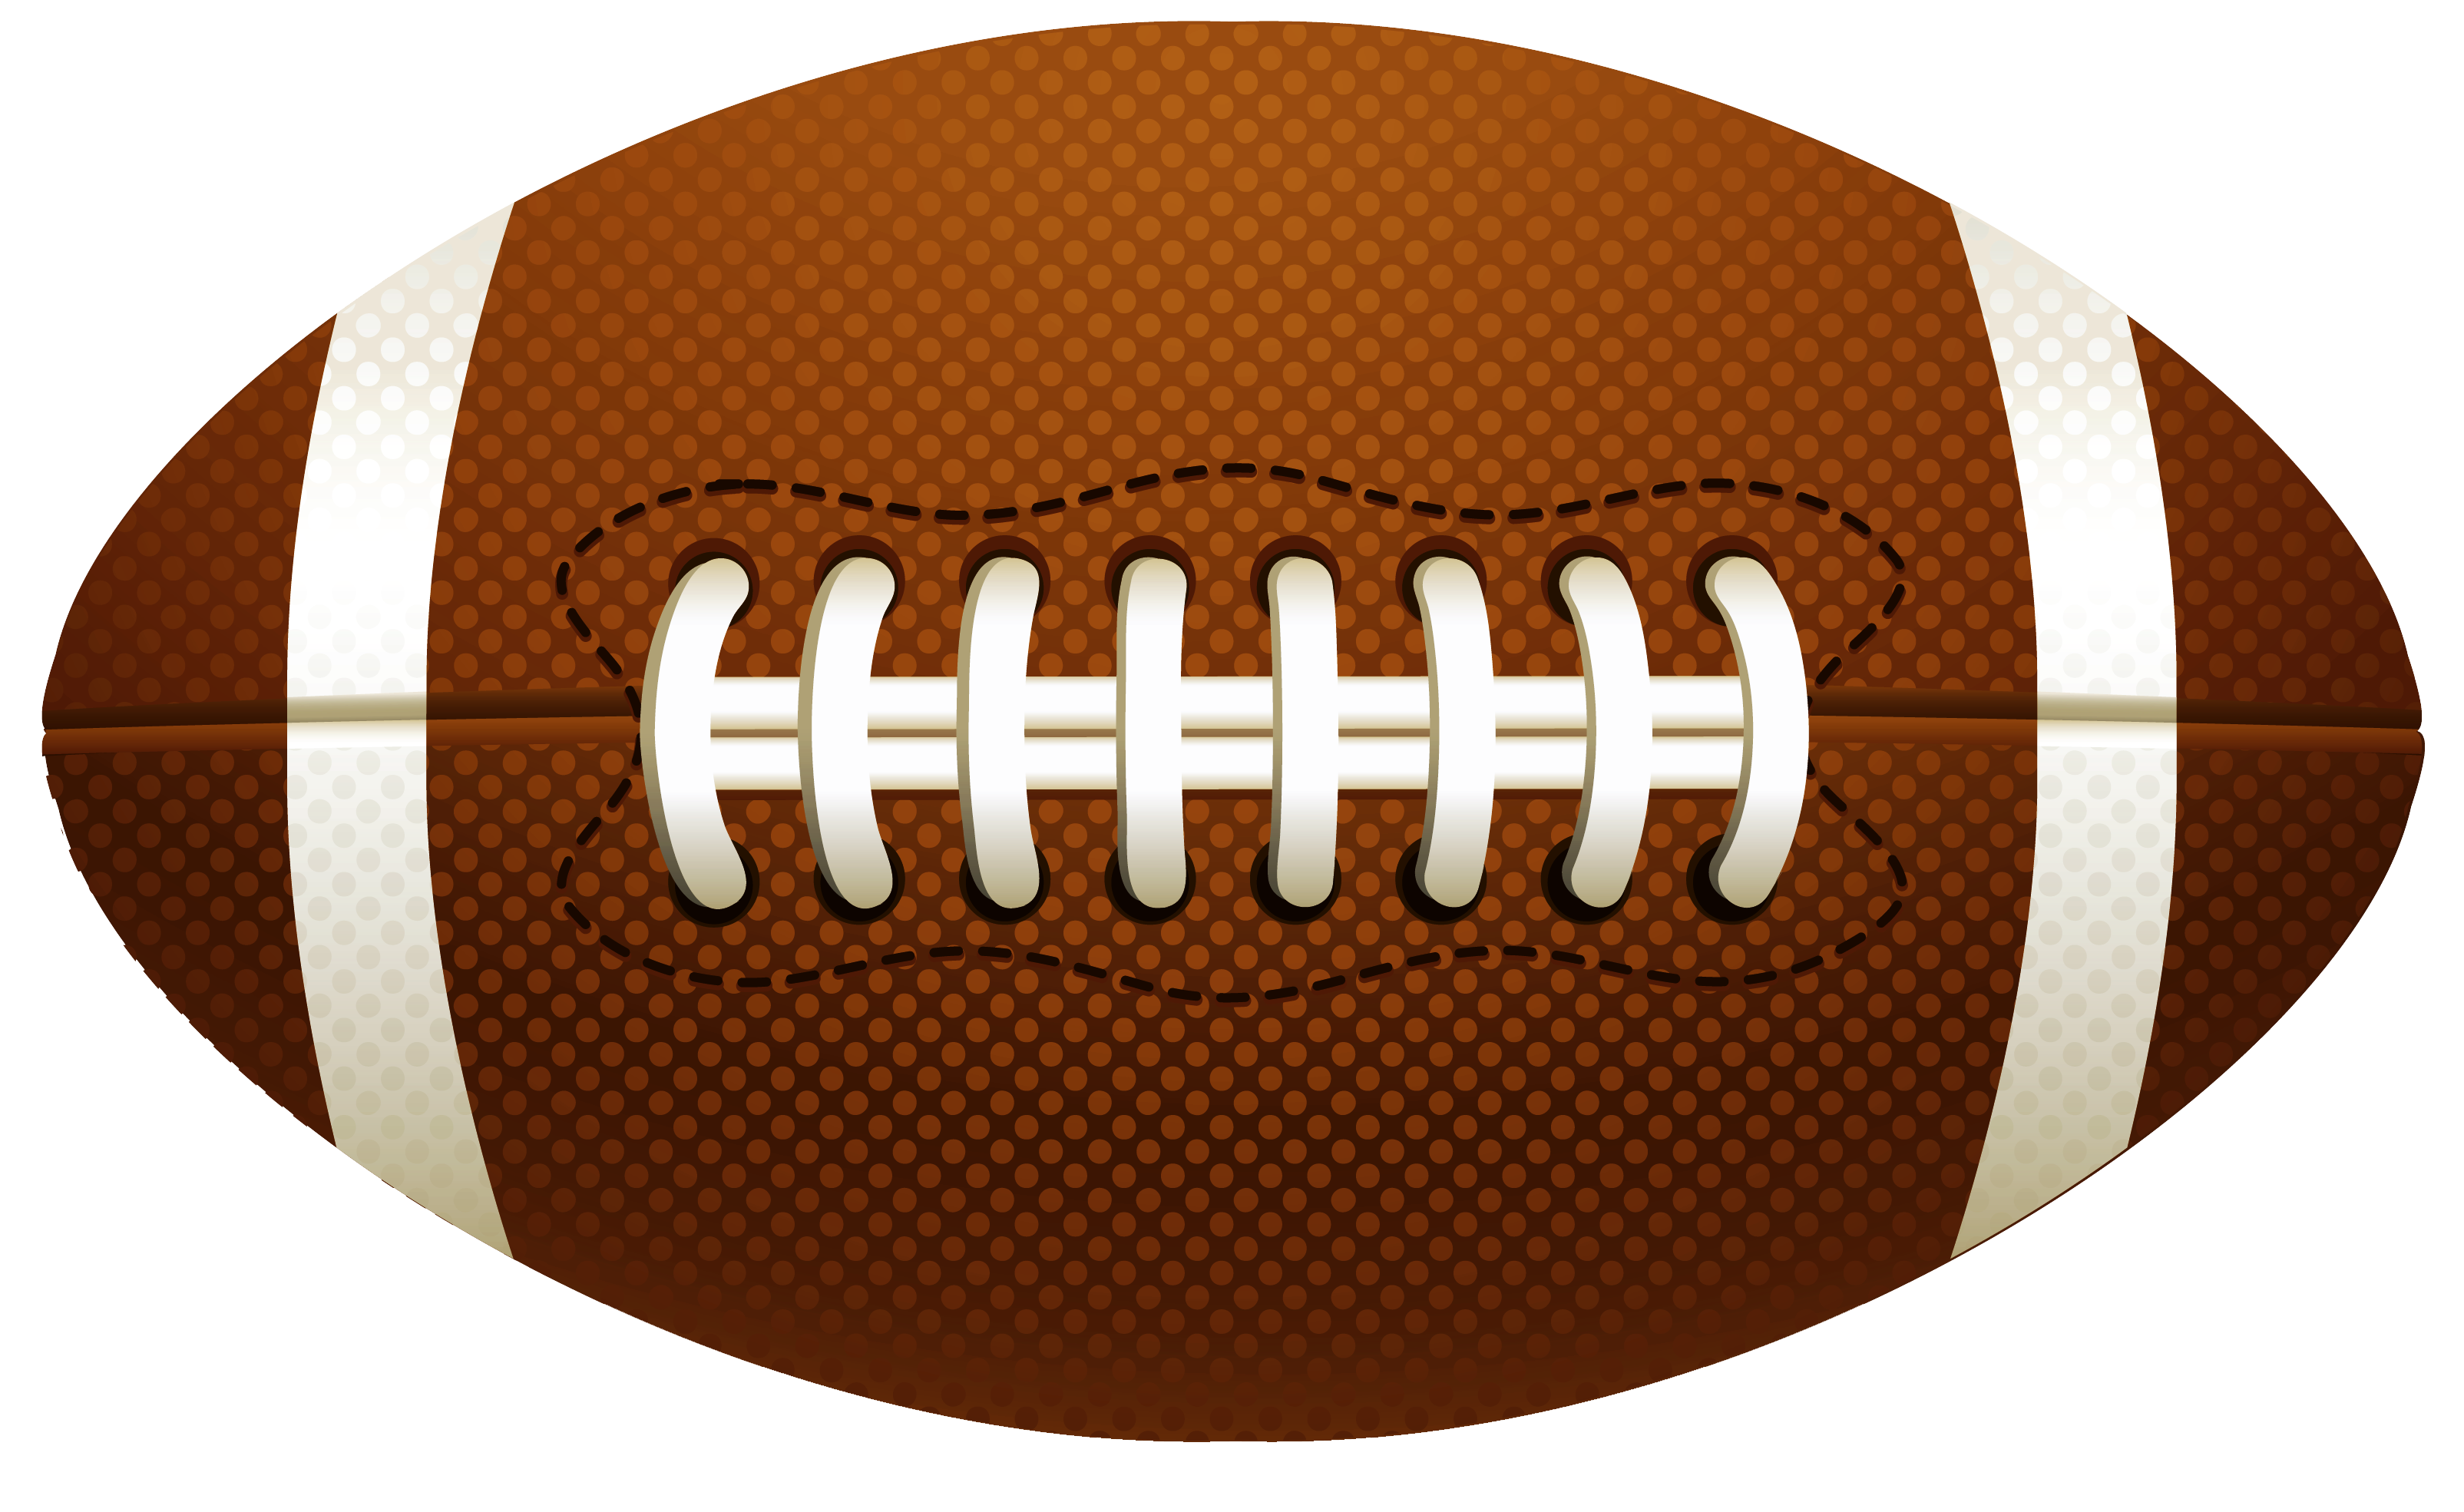 American football jersey clipart clipart library library American Football Ball PNG Vector Clipart | Interests | Pinterest ... clipart library library